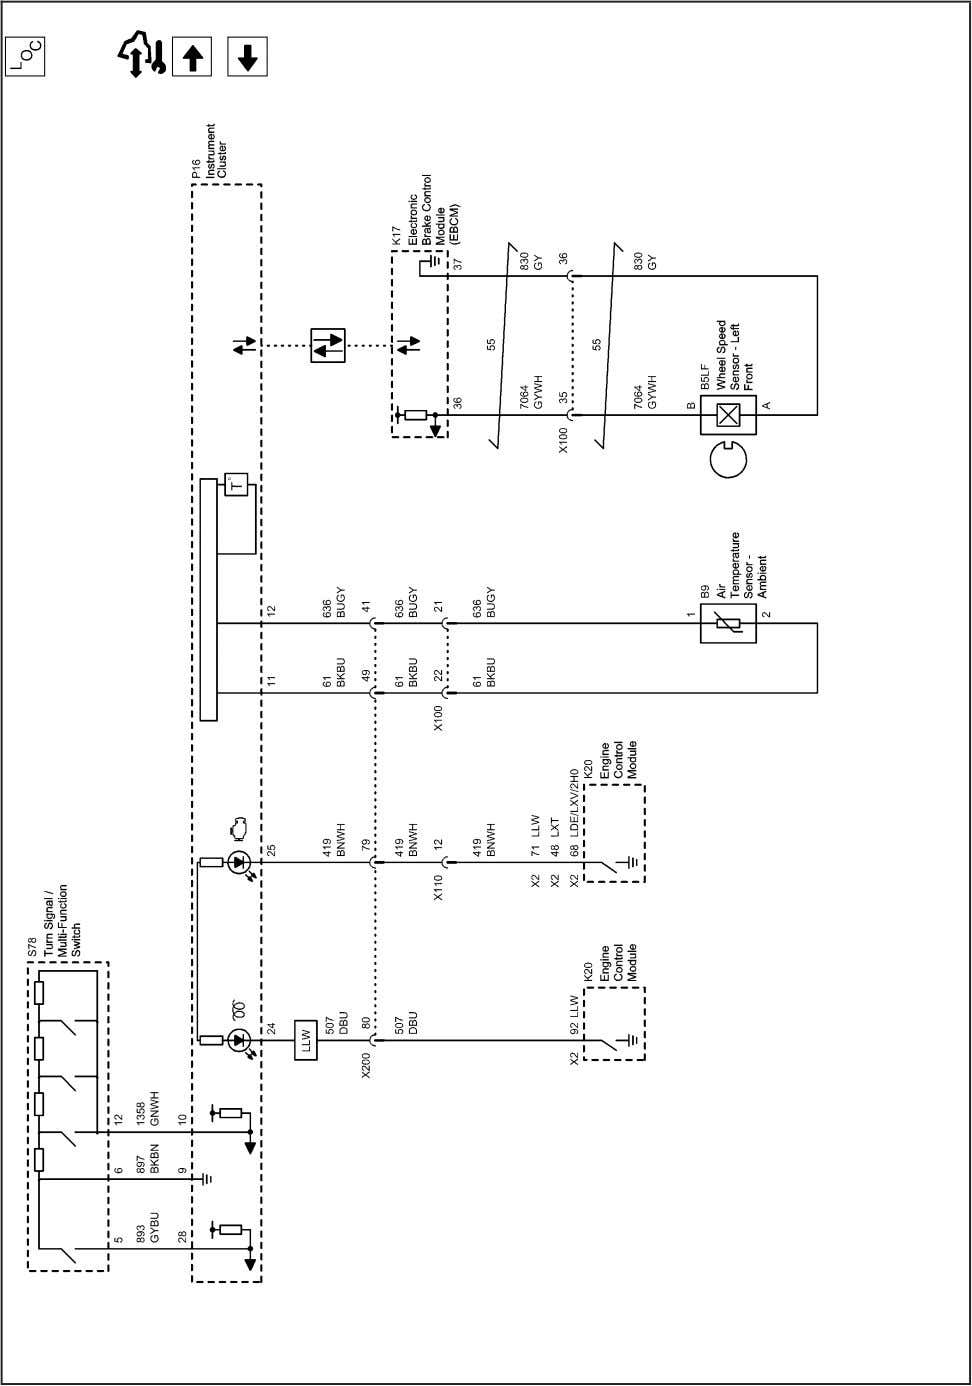 Displays and Gages 8-15 2202883 Instrument Cluster Schematics (Switches and Sensors (1 of 2)) 2010 -